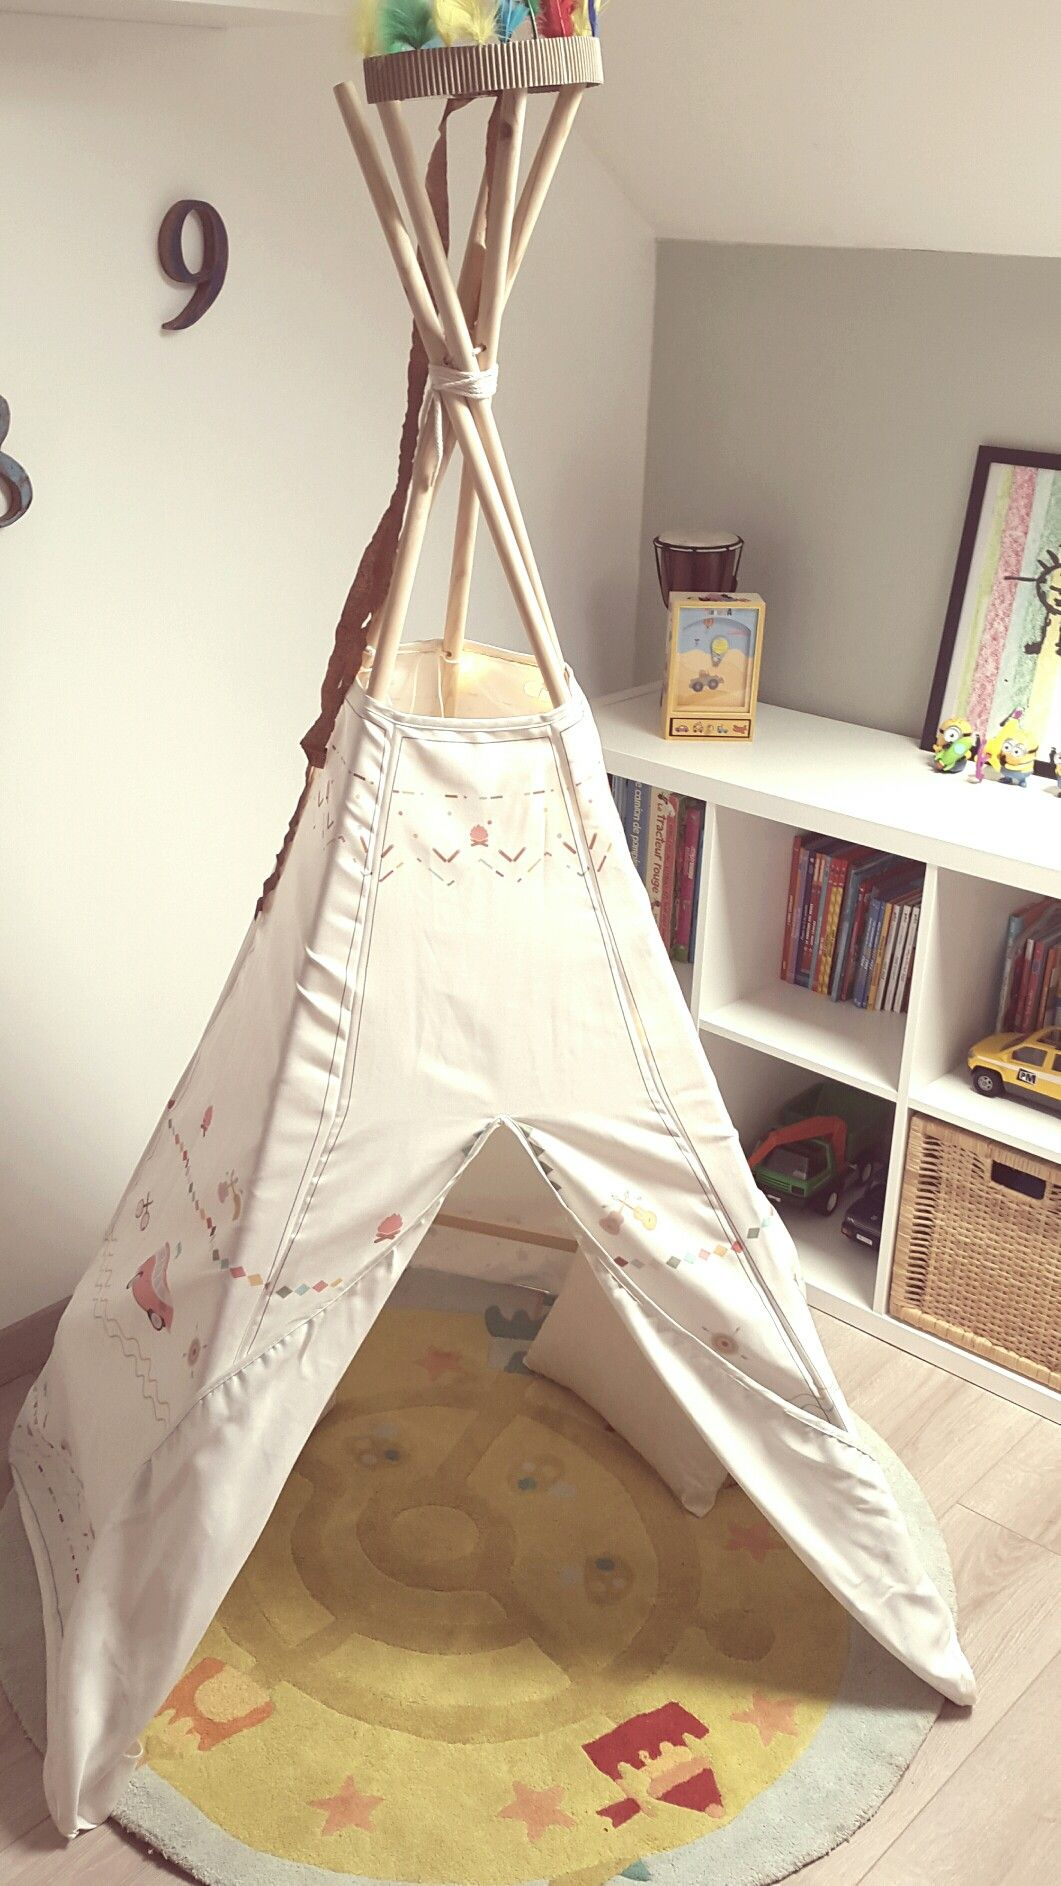 Tipi indien little nice things chambre gar on kidroom pinterest tipi indien indien et nice - Tipi indien chambre ...